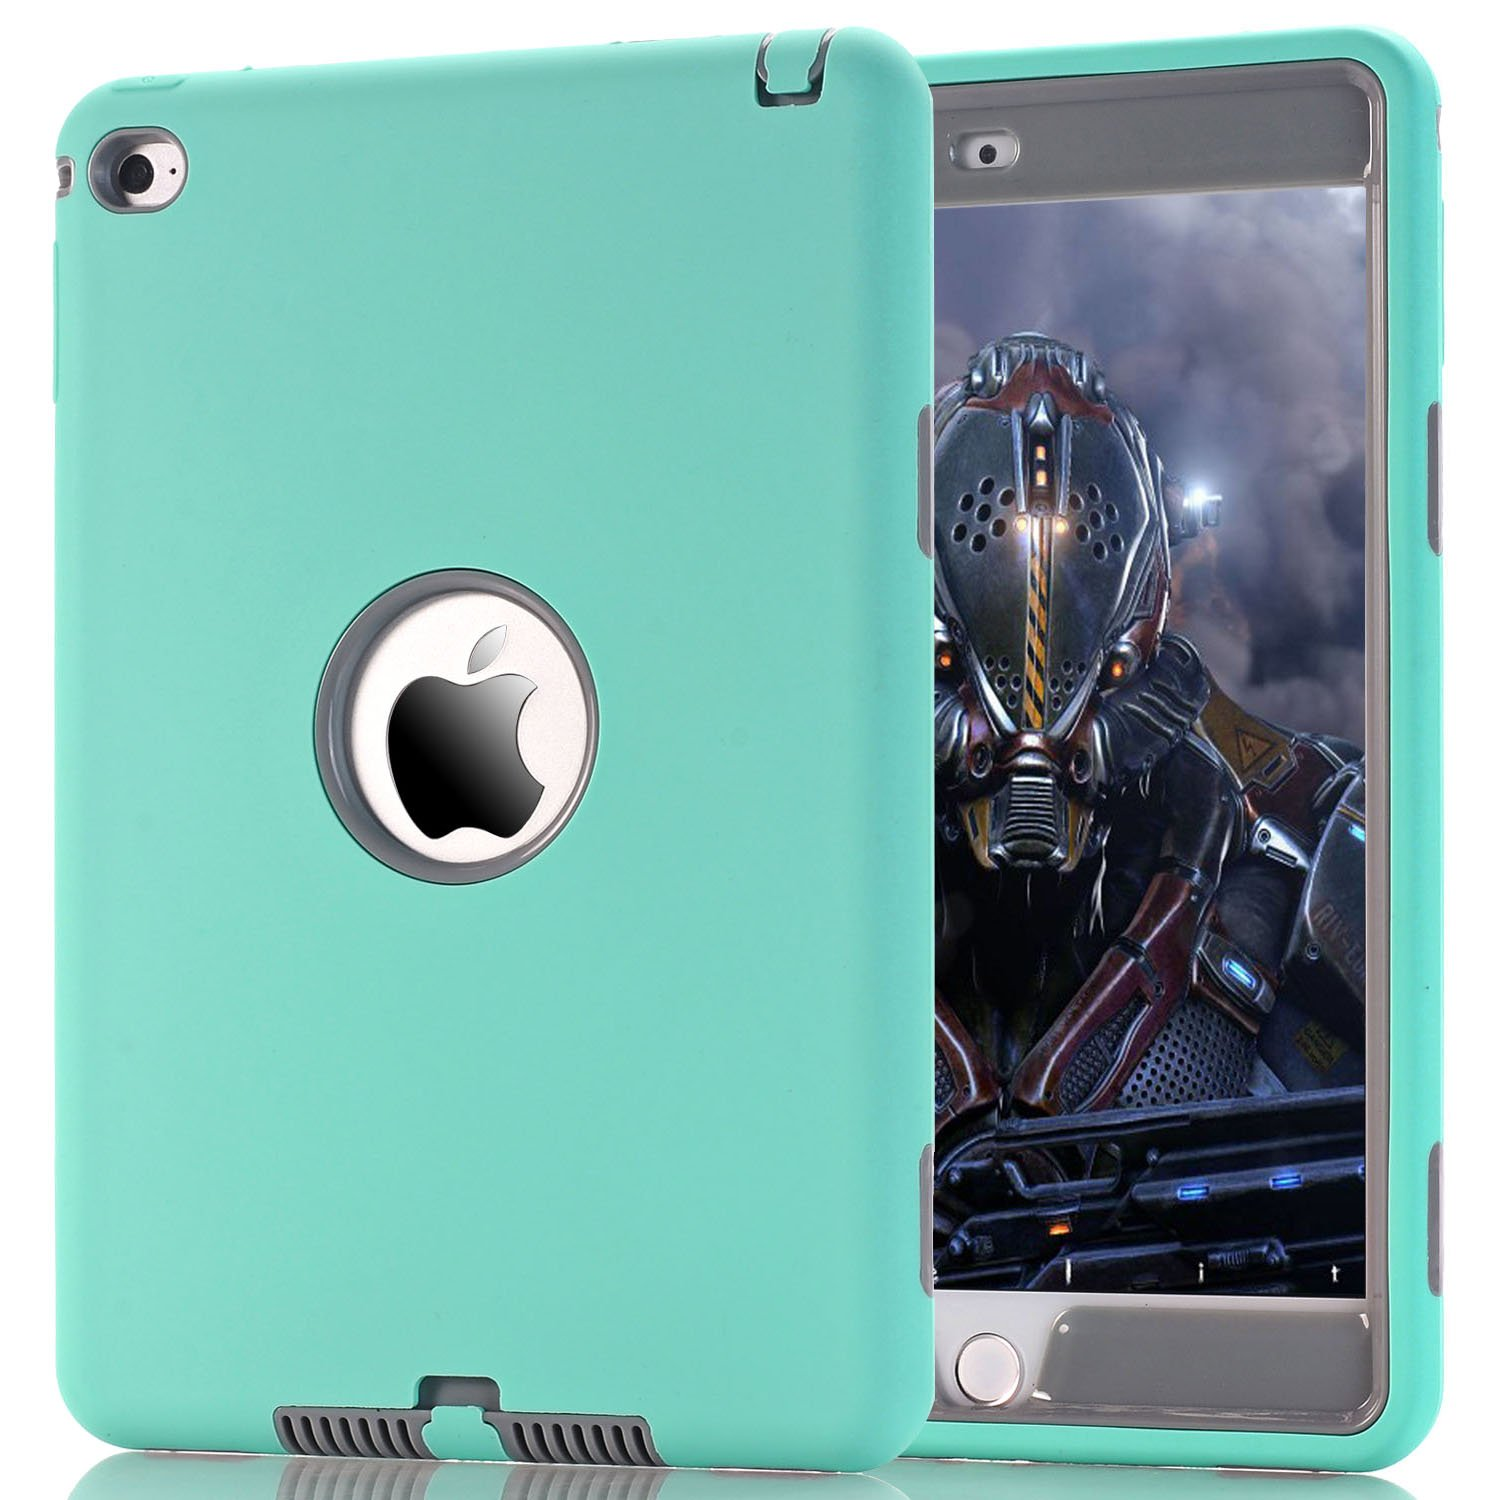 iPad Mini 4 Case, SURBUID with Cell Phone Stand Heavy Duty Protection Shock Absorbing High Impact Silicone Rubber Bumper+Hard Plastic Shell Hybrid Dual Layer Armor Protective Case (Mint)